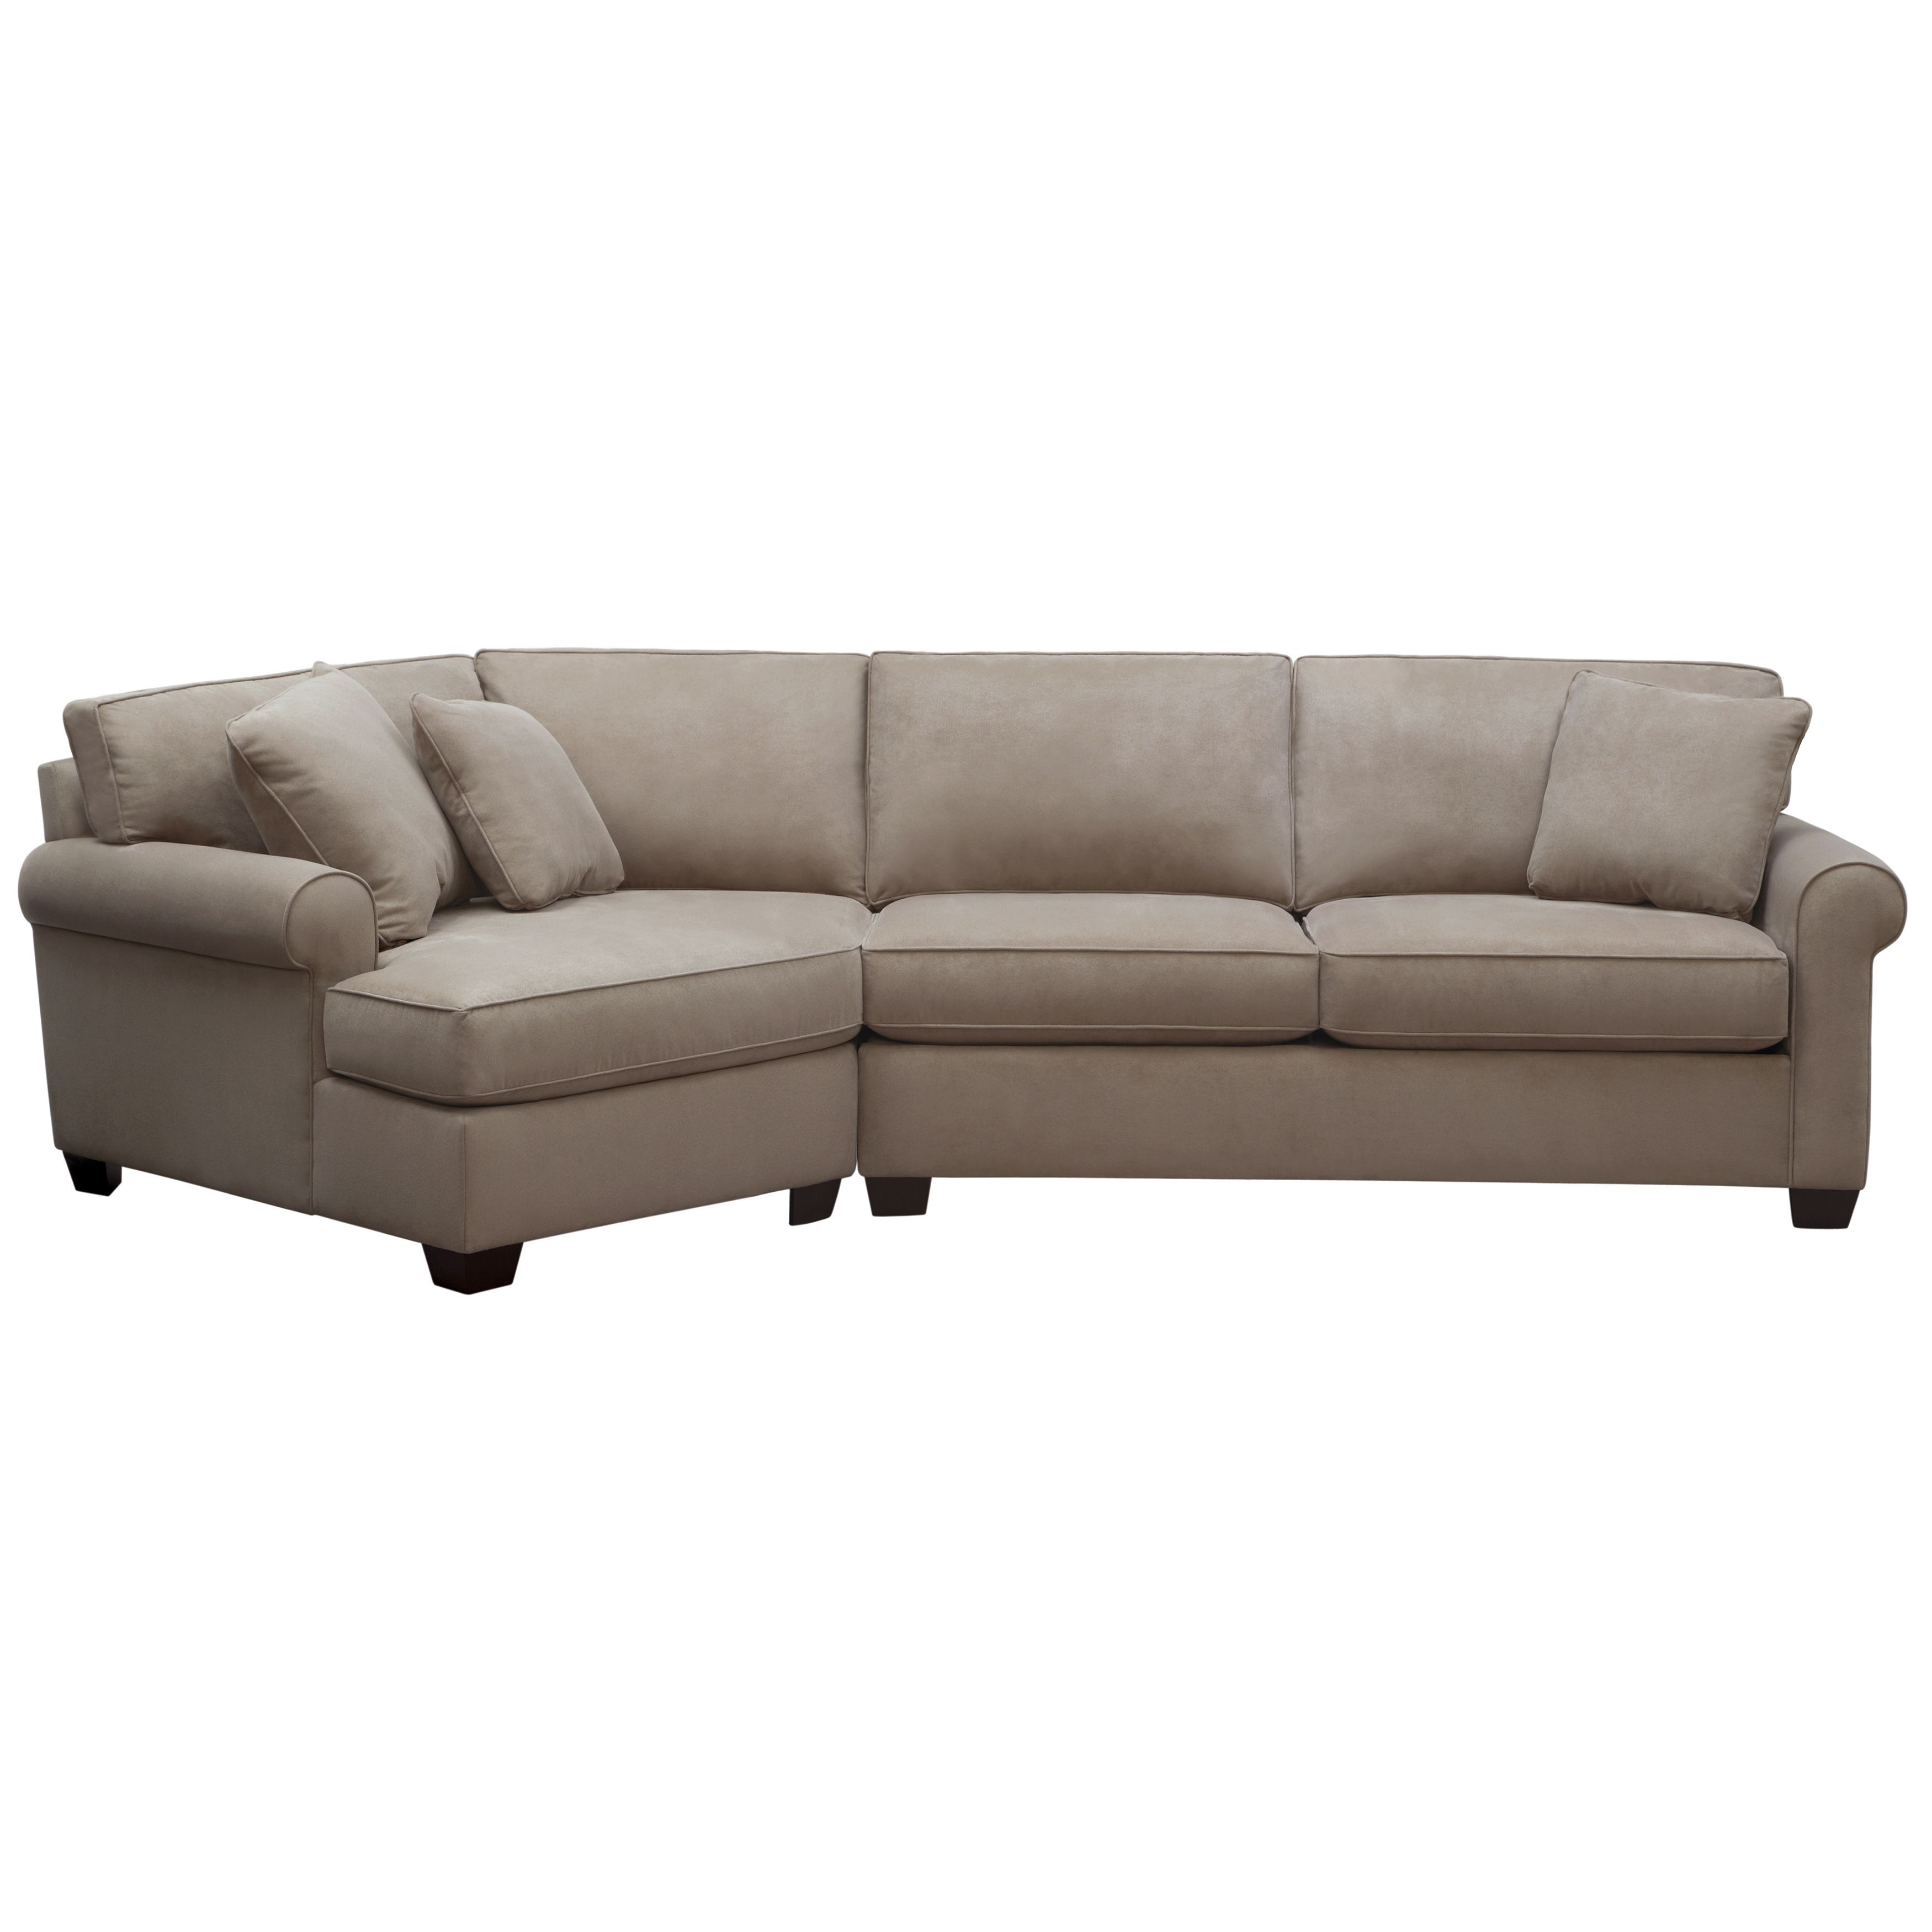 Best The Marisol Iii Sectional Has Several Pieces So You Can 400 x 300